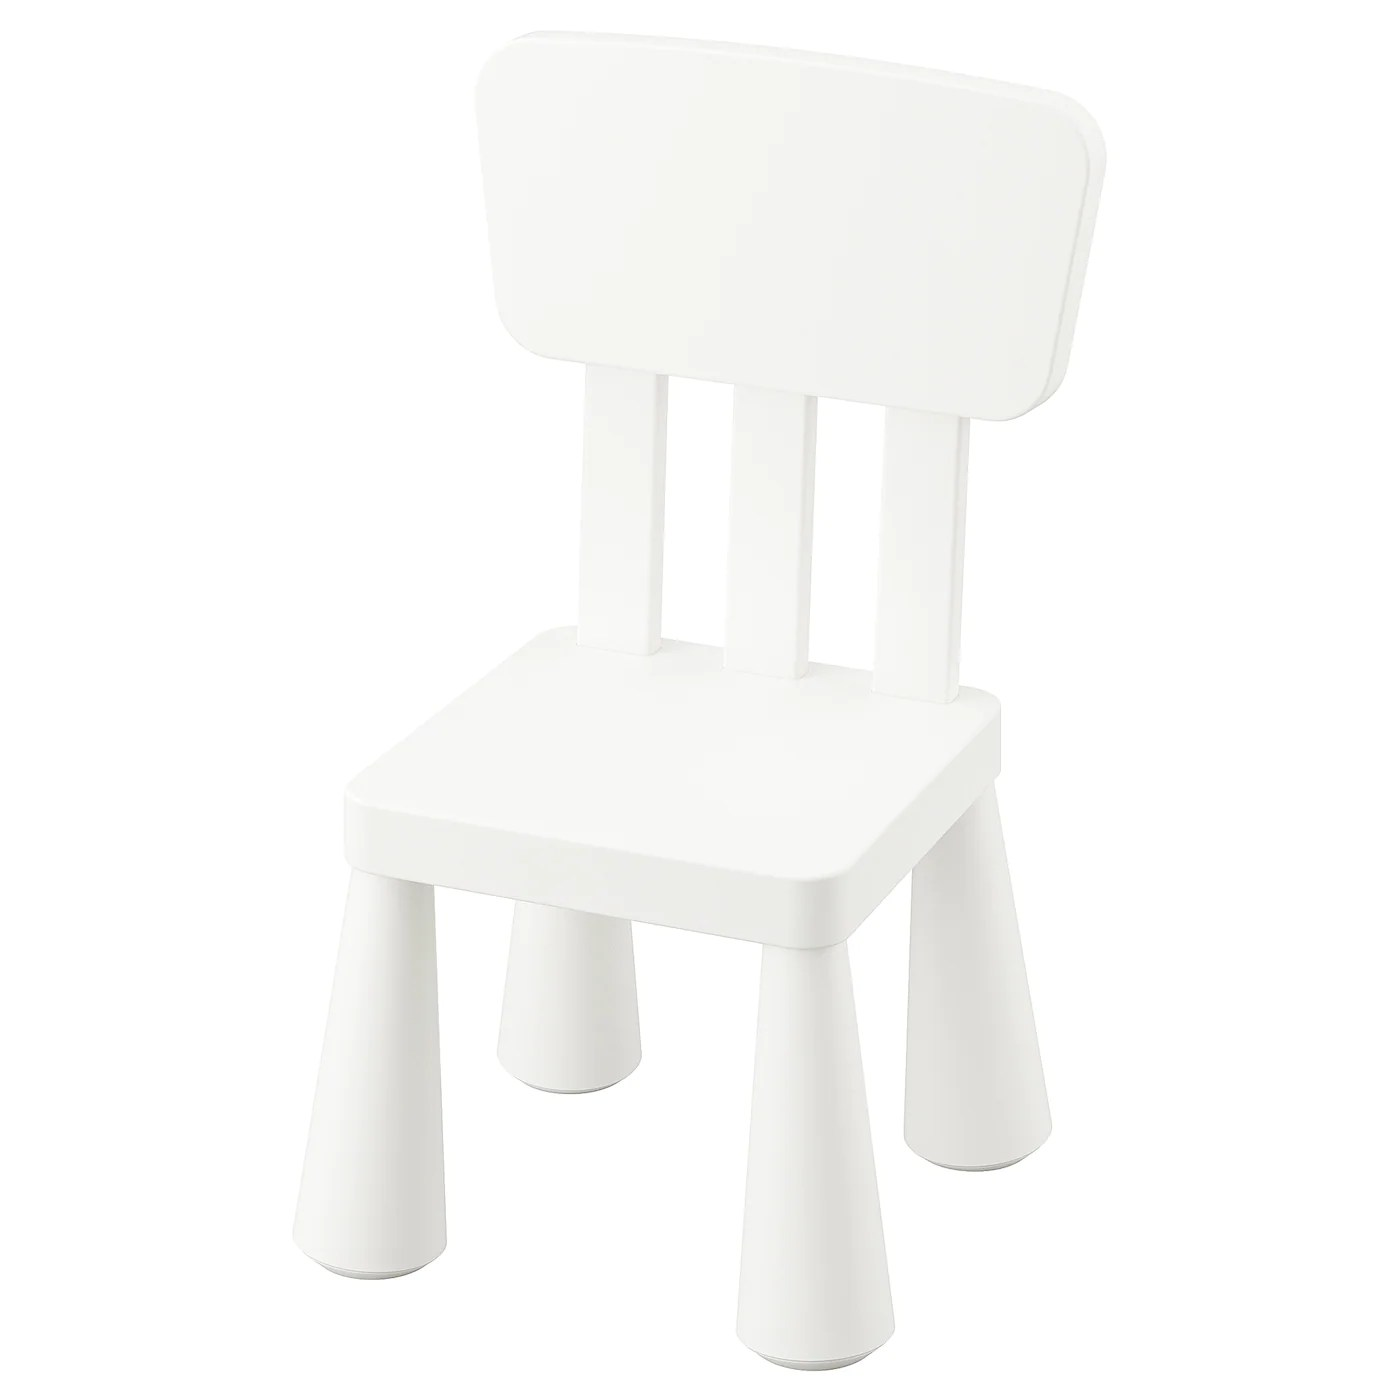 Toddler Wooden Chair Children S Small Furniture Children S Table Chairs Ikea